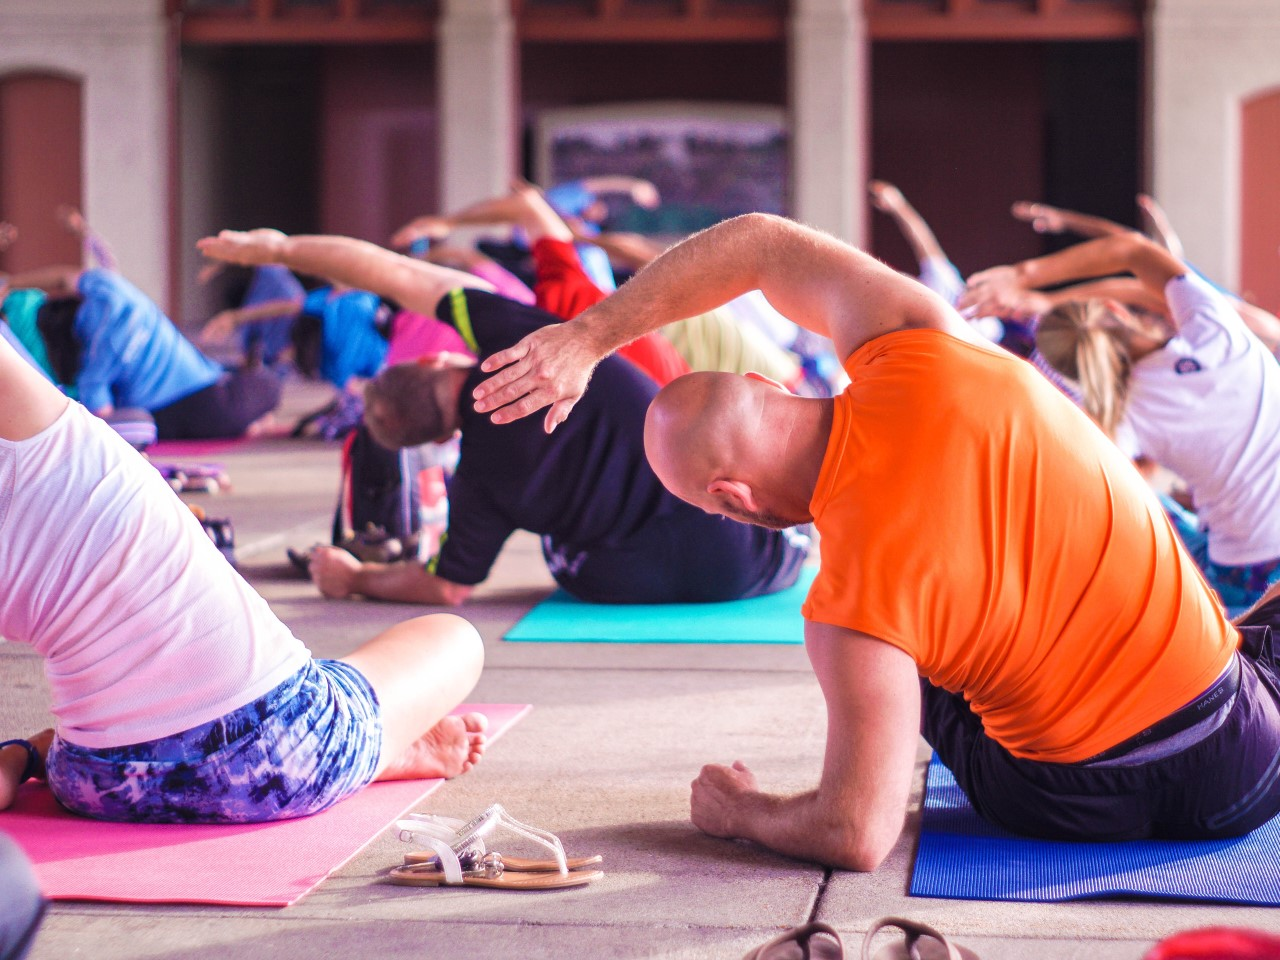 Yoga, reiki, mindfulness they can all help with coping